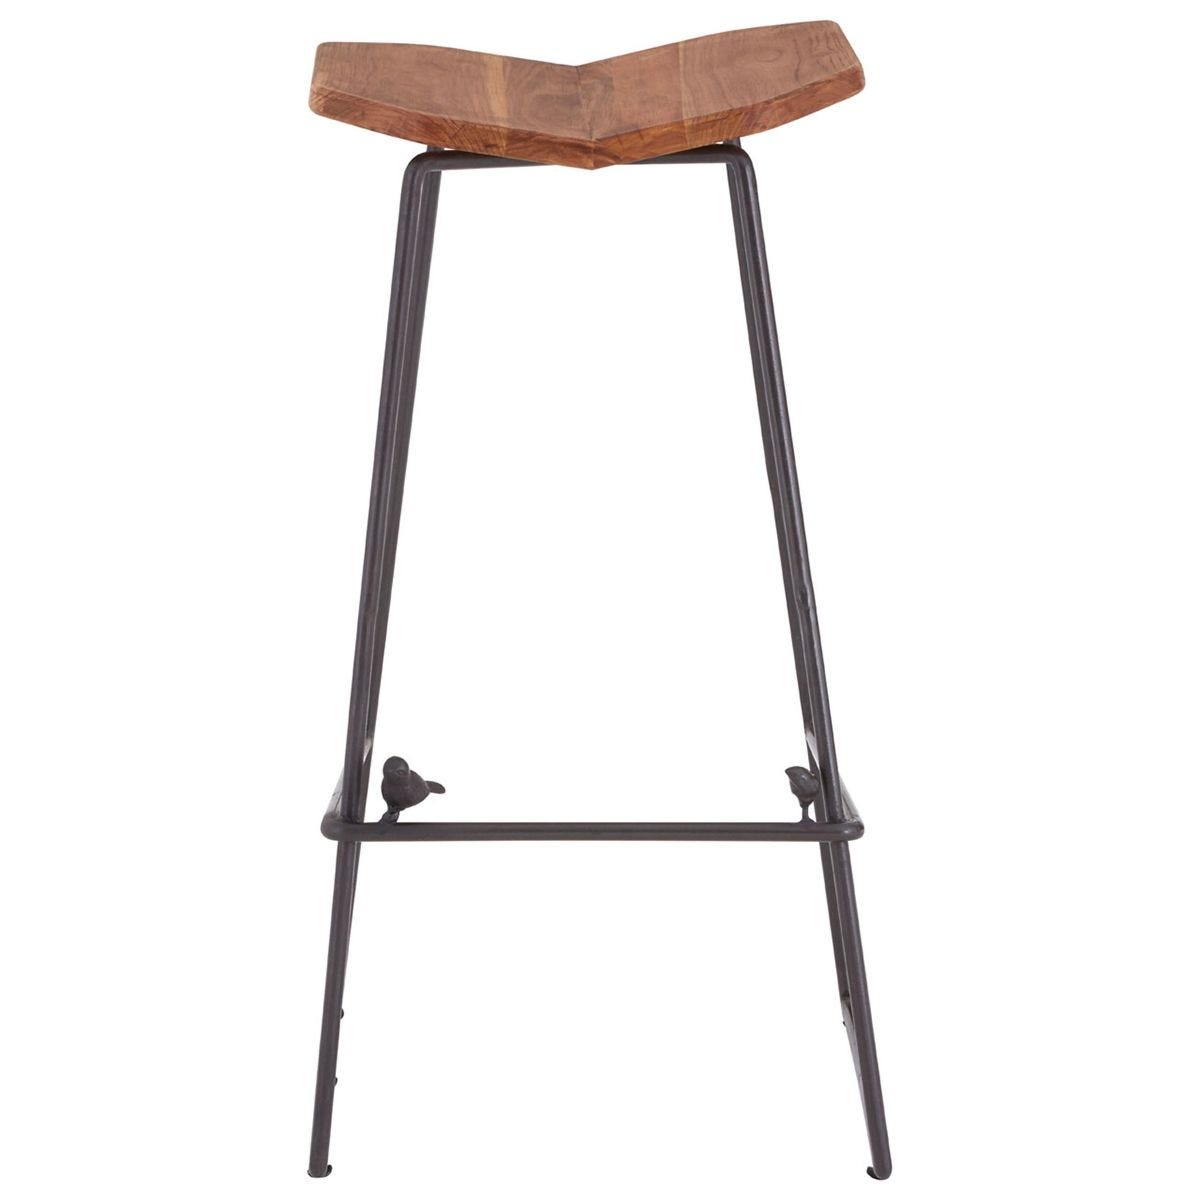 New Foundry 4 Leg Bar Stool